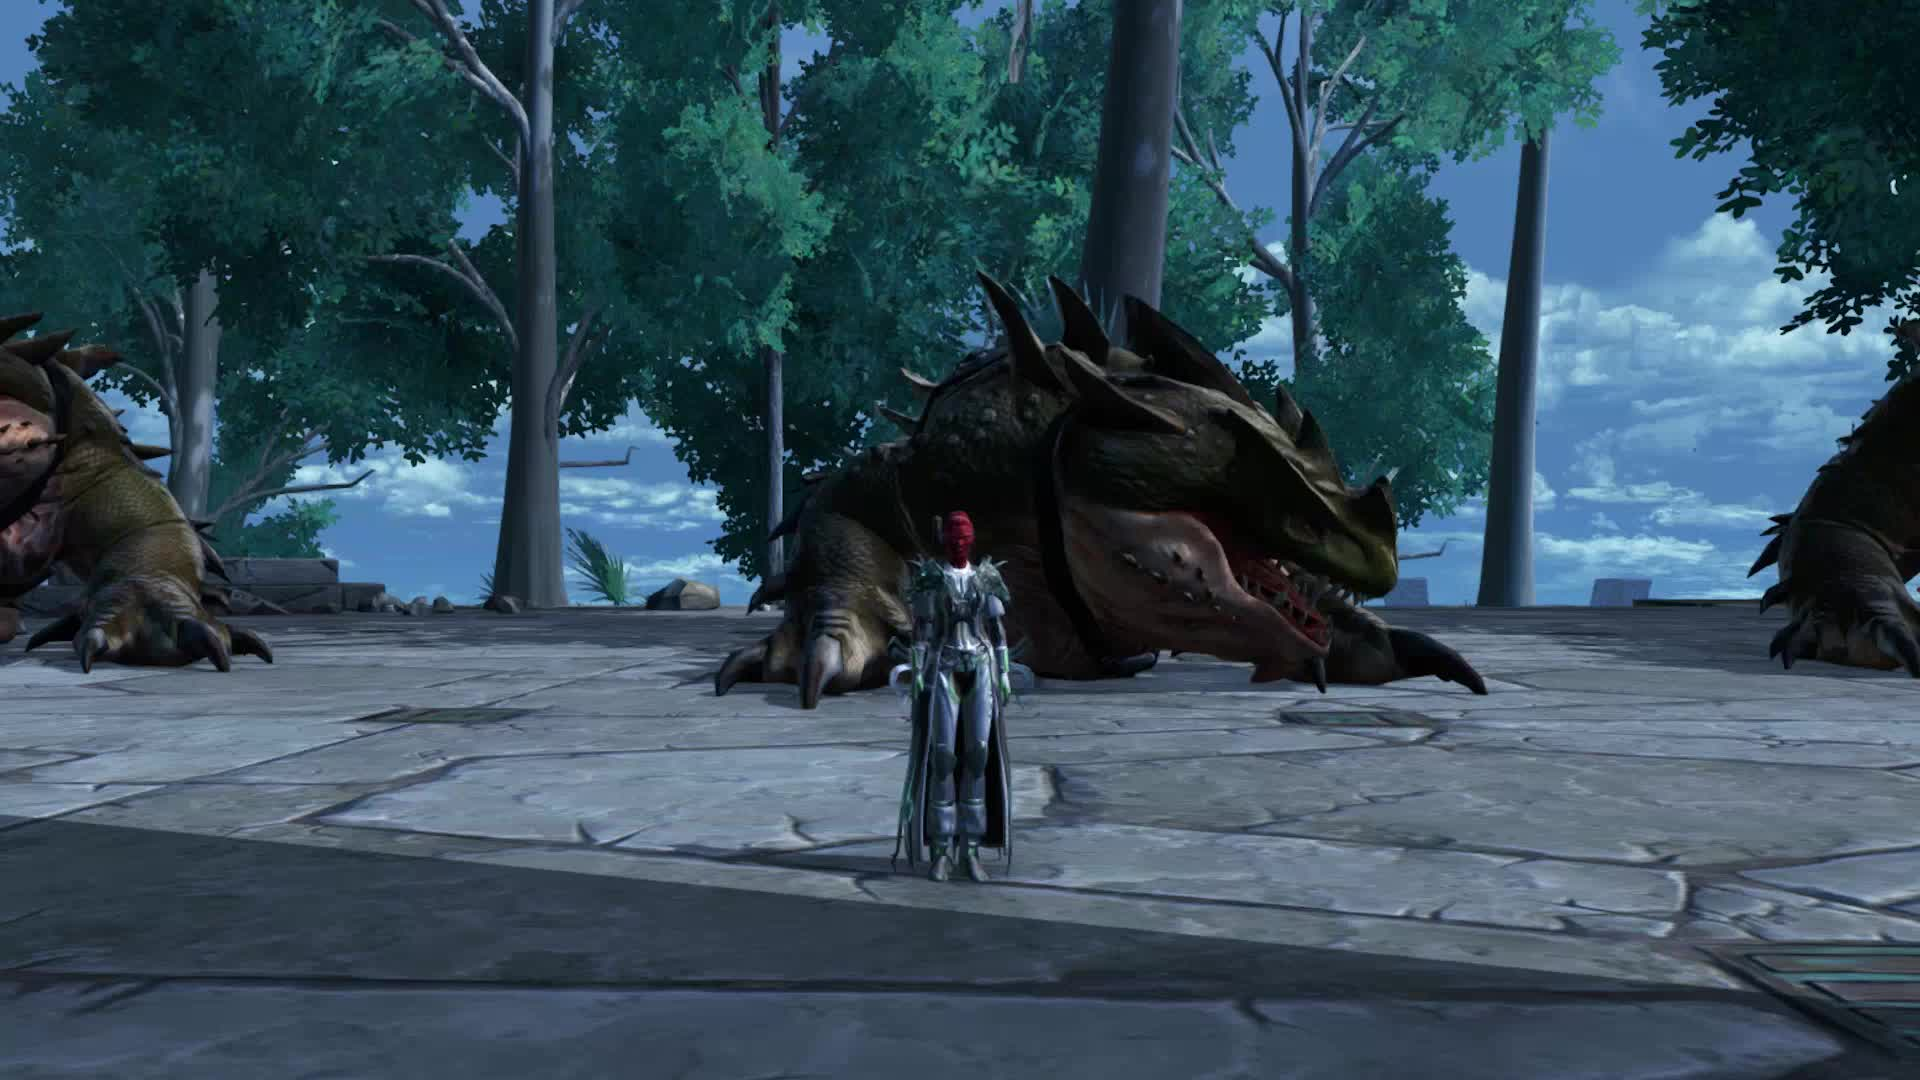 MMO, PC, SWTOR, Star Wars, Empress Mintlaw & Her Dragons GIFs